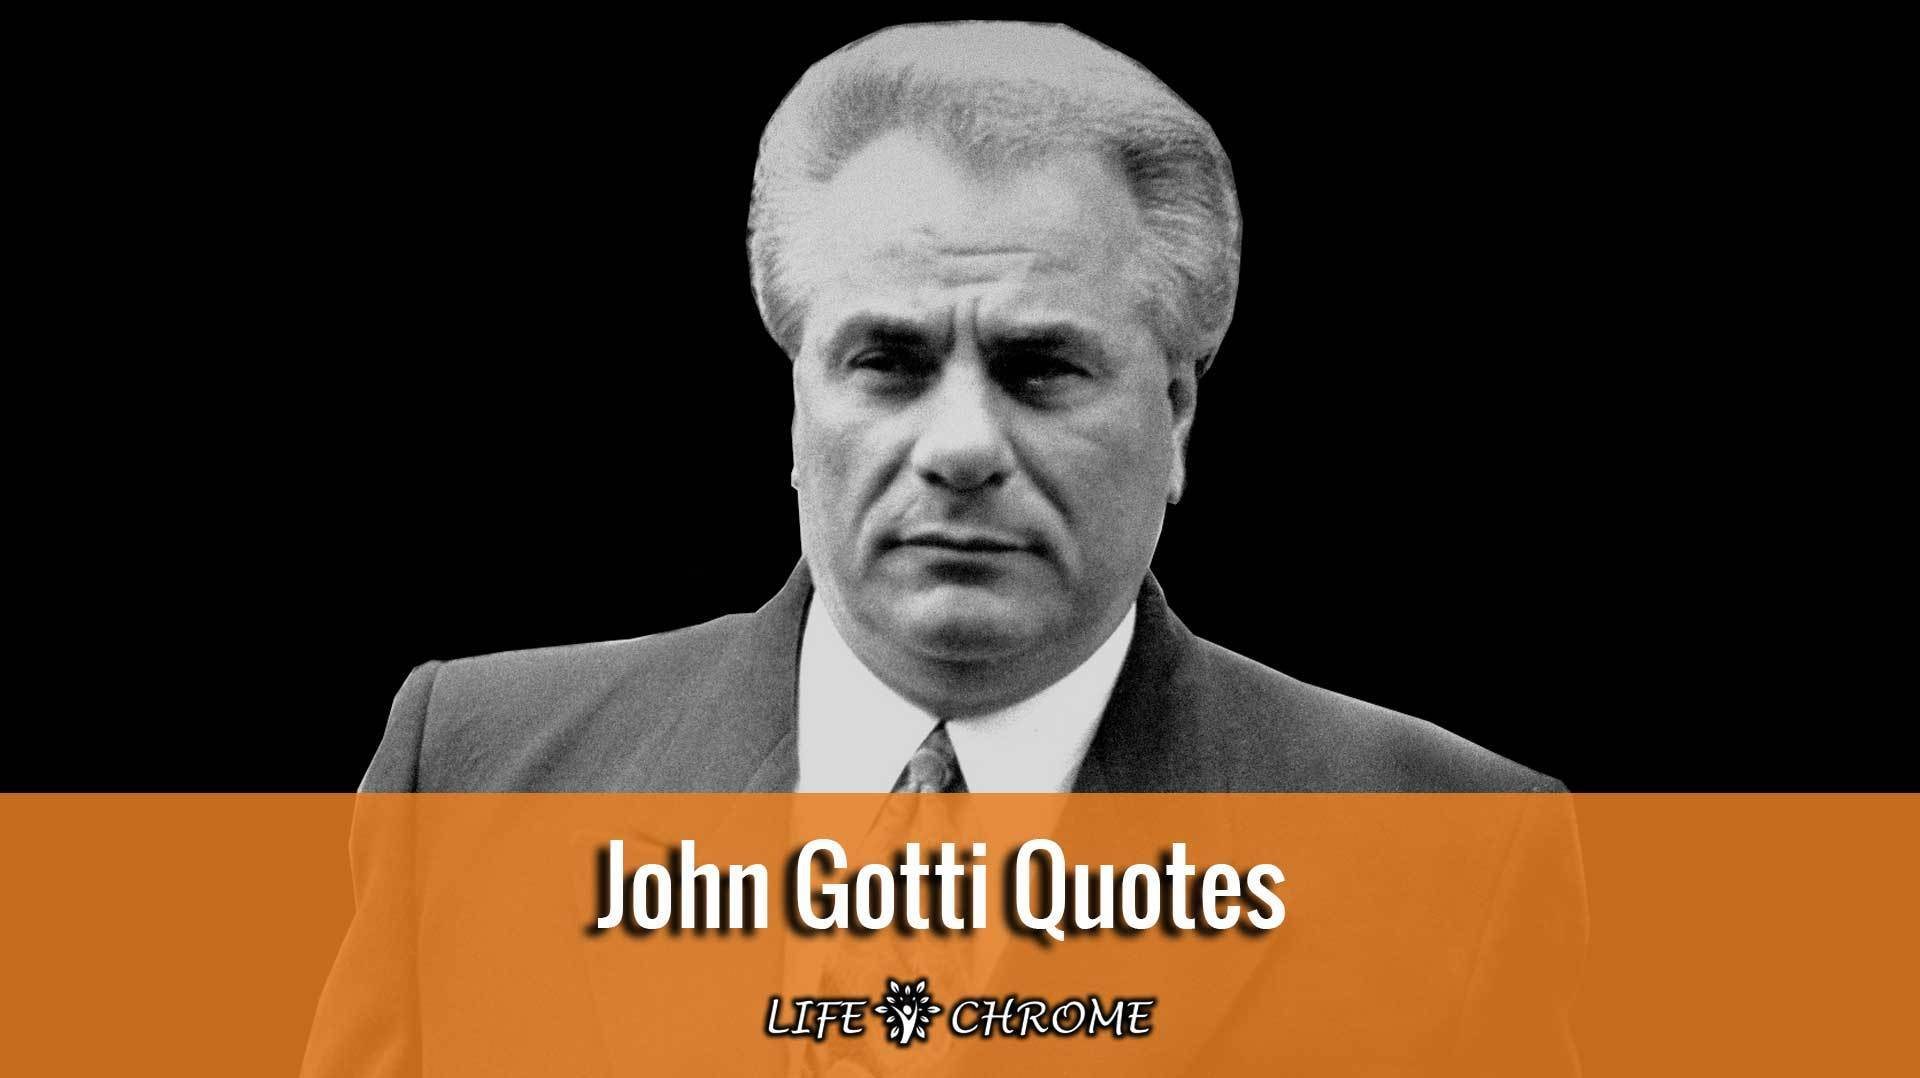 John-Gotti-Quotes